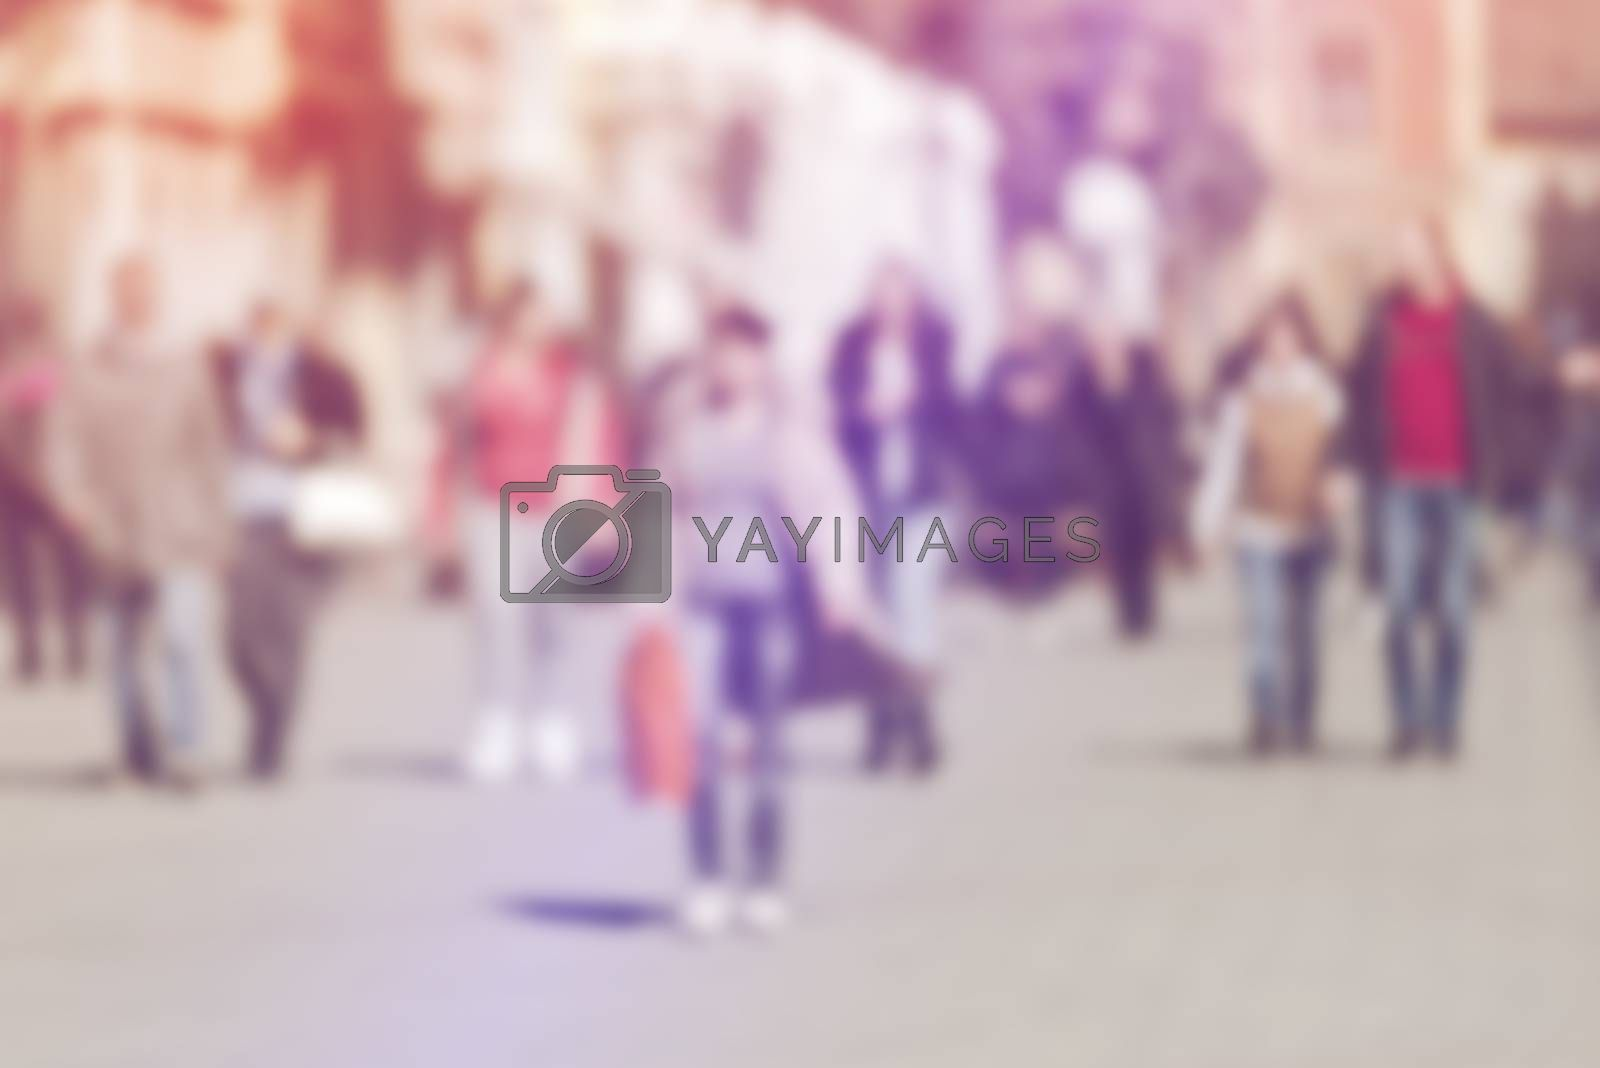 Crowd of People Walking On the Street in Bokeh, unrecognizable group of men and women with shoppingbags as blur urban background